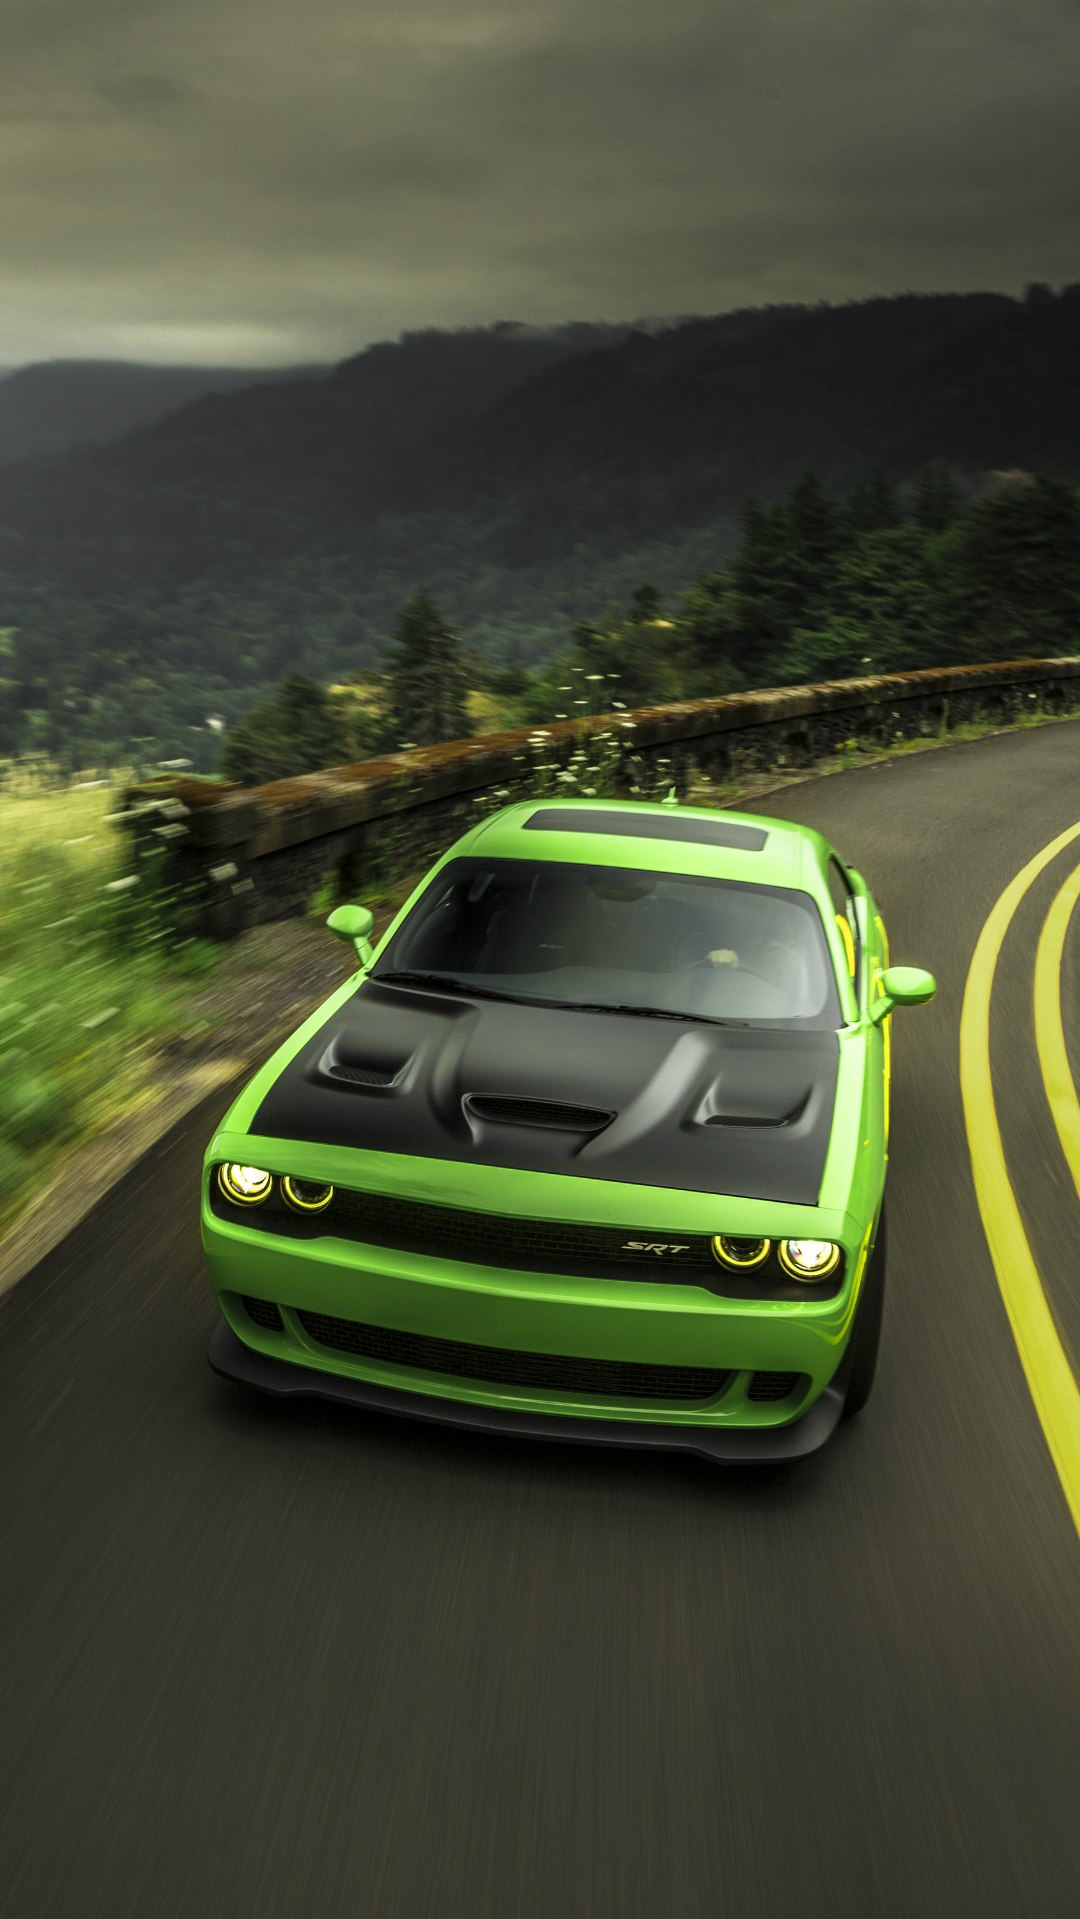 Muscle Car Wallpaper Iphone 6 Dodge Challenger Srt Green Iphone Wallpaper Iphone